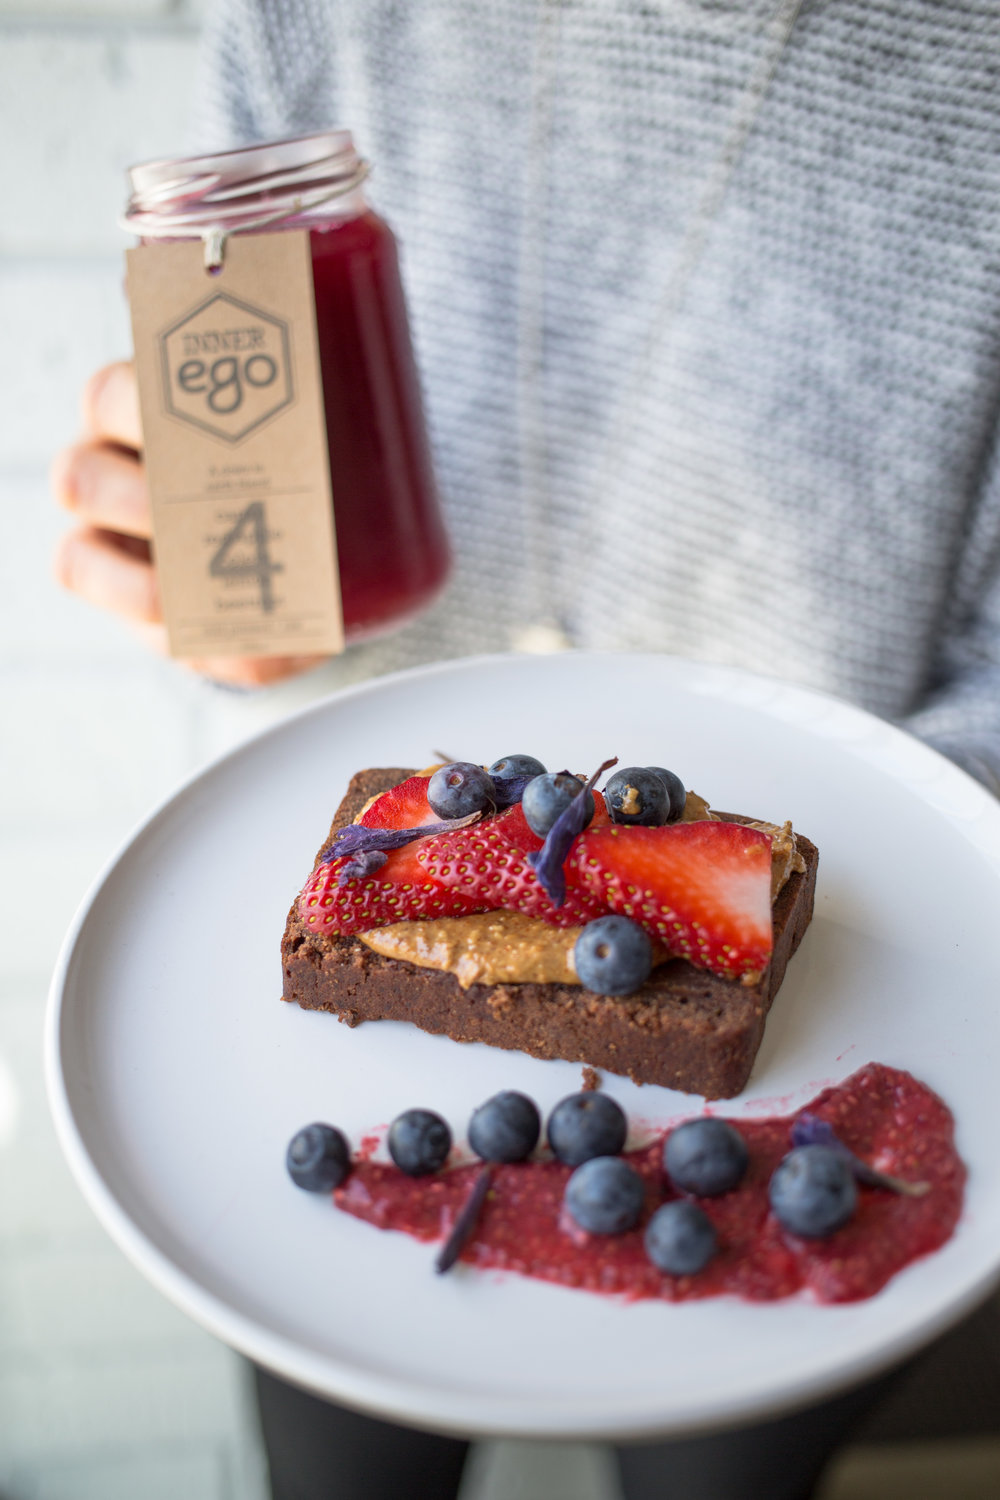 Juice + Food: HGC Vegan Peanut Butter Cacao Bread paired with Juice #4